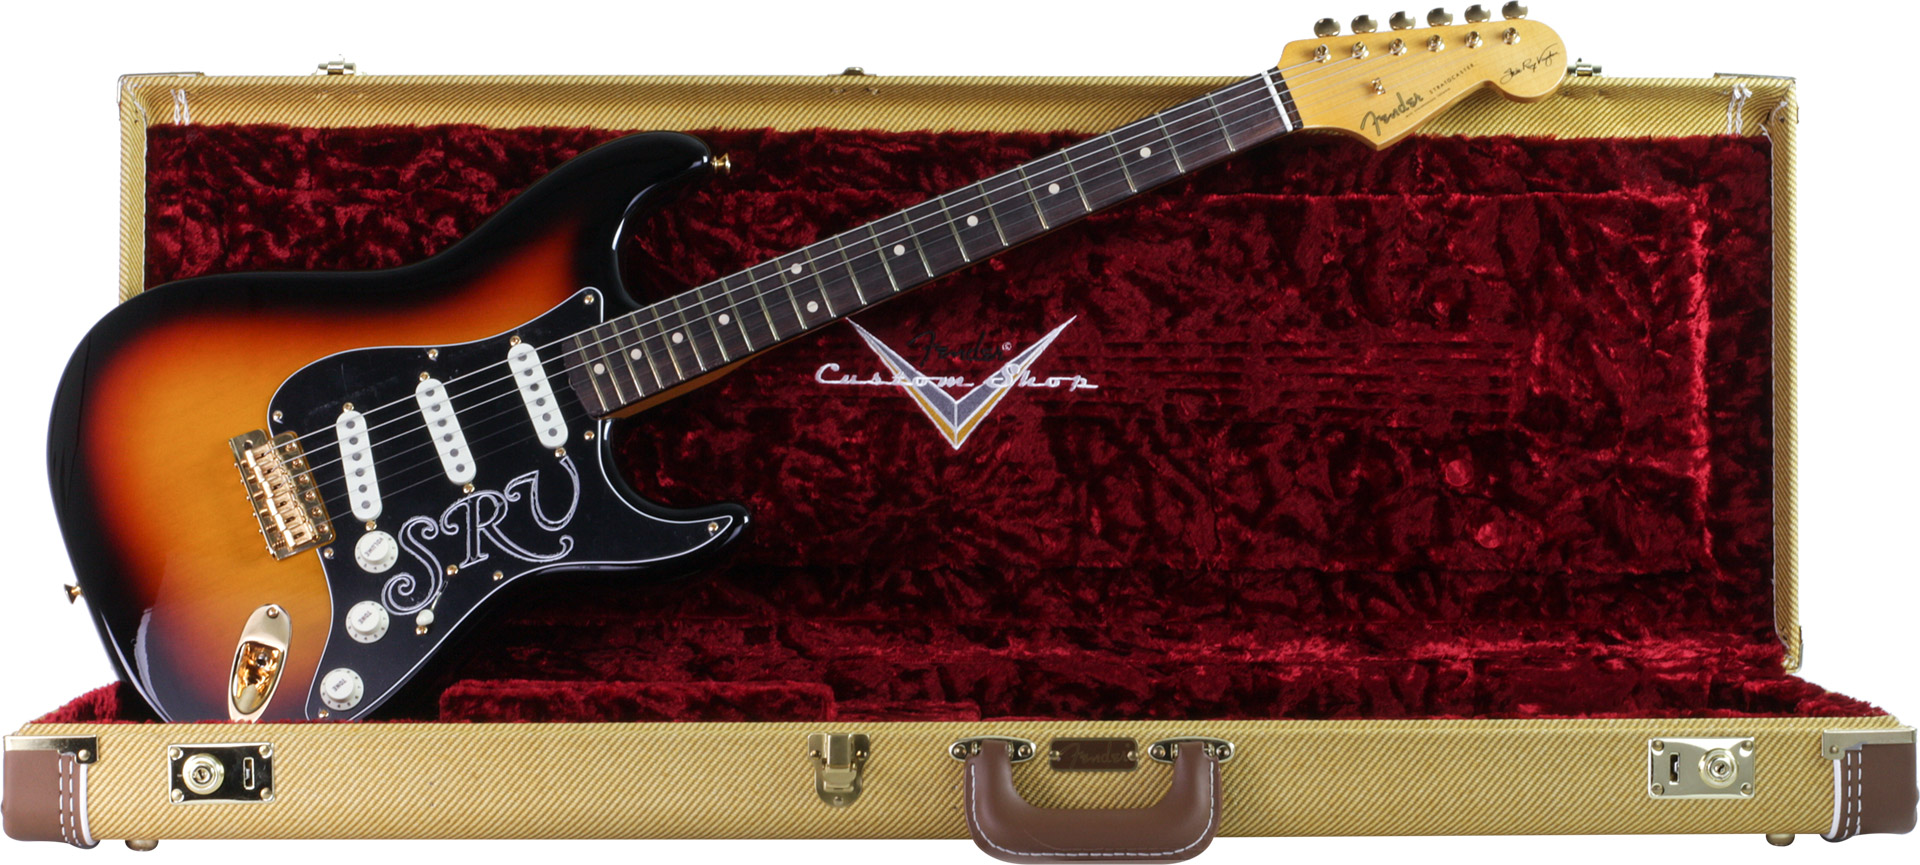 GUITARRA FENDER 923 5000 - SIG SERIES STEVIE RAY VAUGHAN STRATOCASTER NOS LTD ED - 863 - 3-COLOR SB